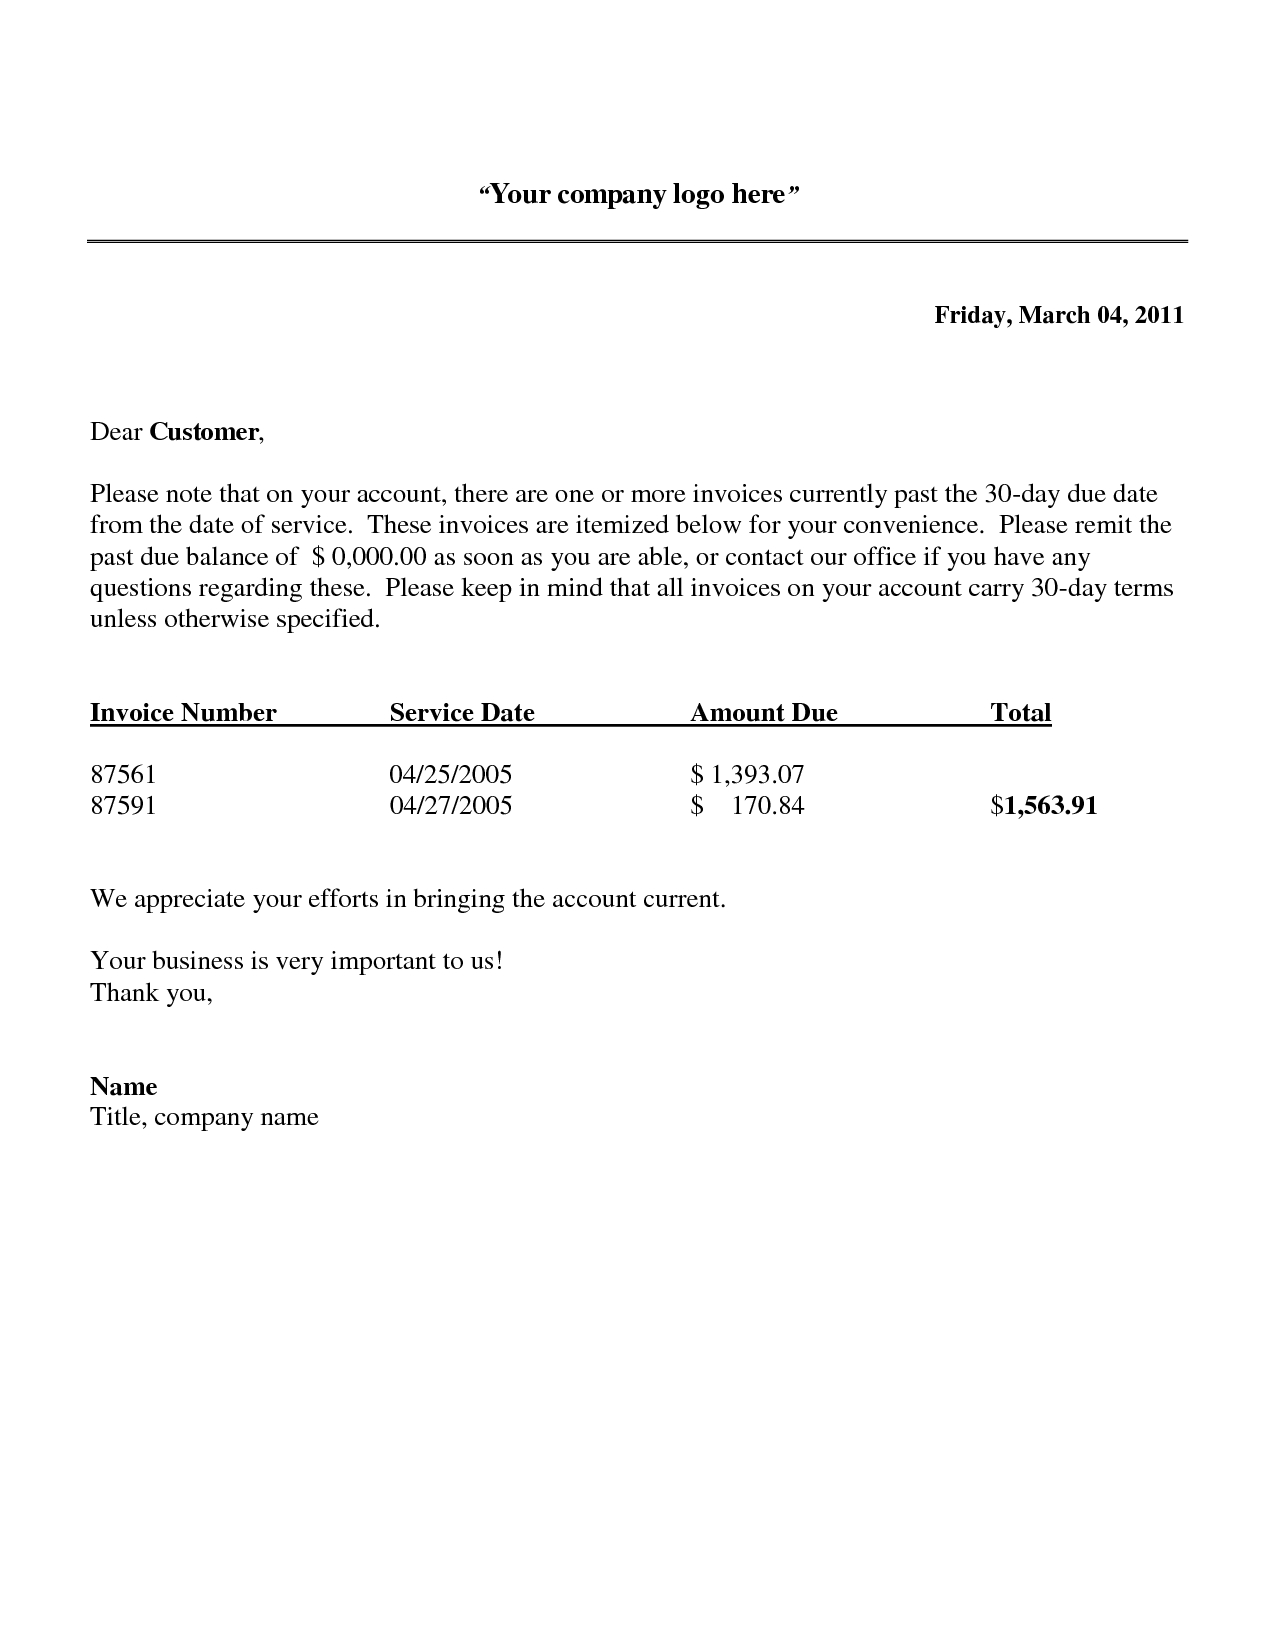 example invoice reminder letter cover letter examples after invoice letter example